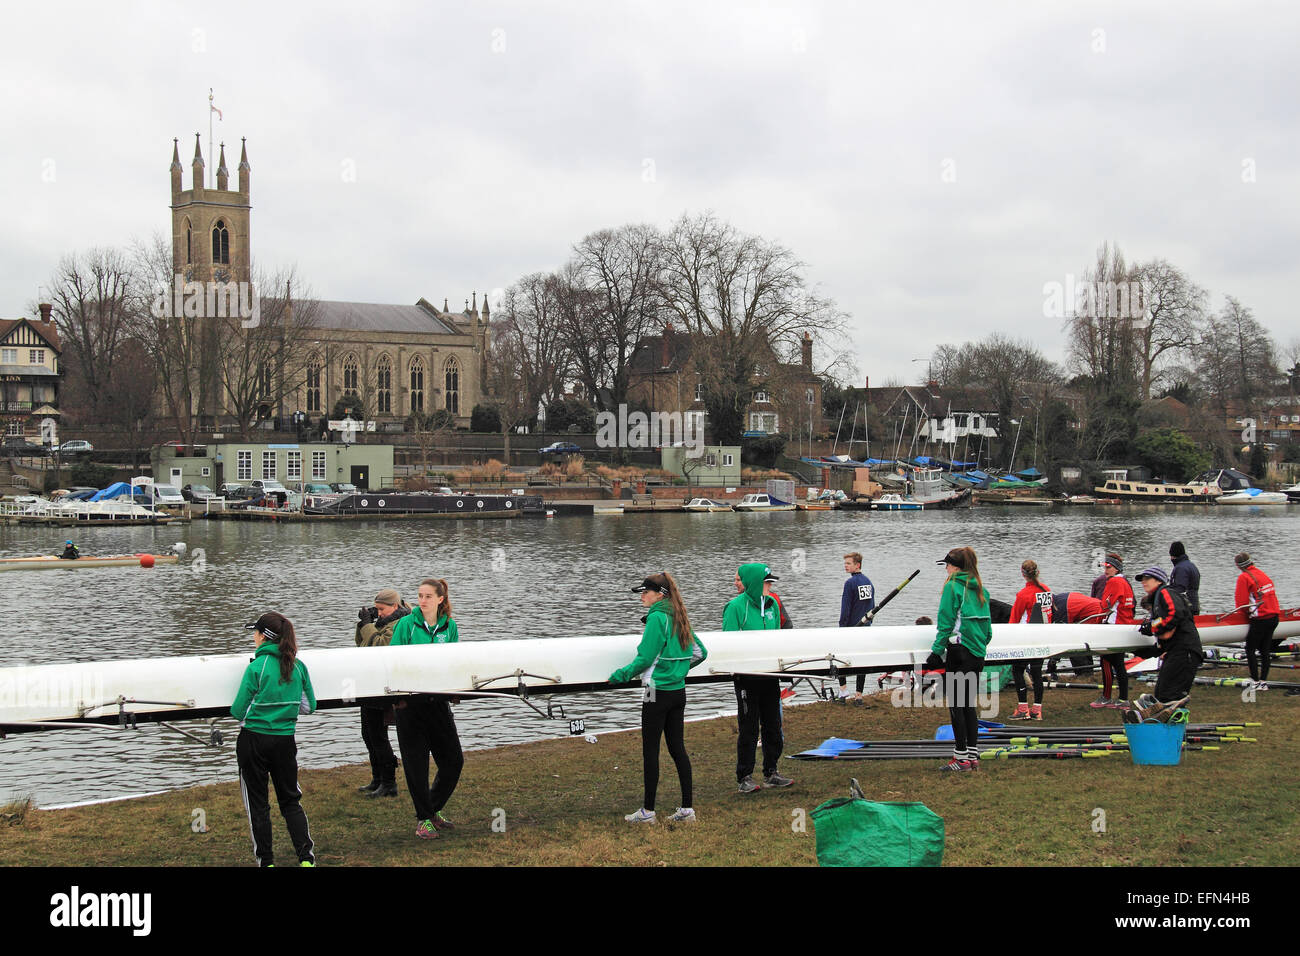 Barn Elms Rowing Club WJ16A.8+ prepare to launch. Hampton Head (Junior 4s and 8s) rowing event.  River Thames, Hurst - Stock Image